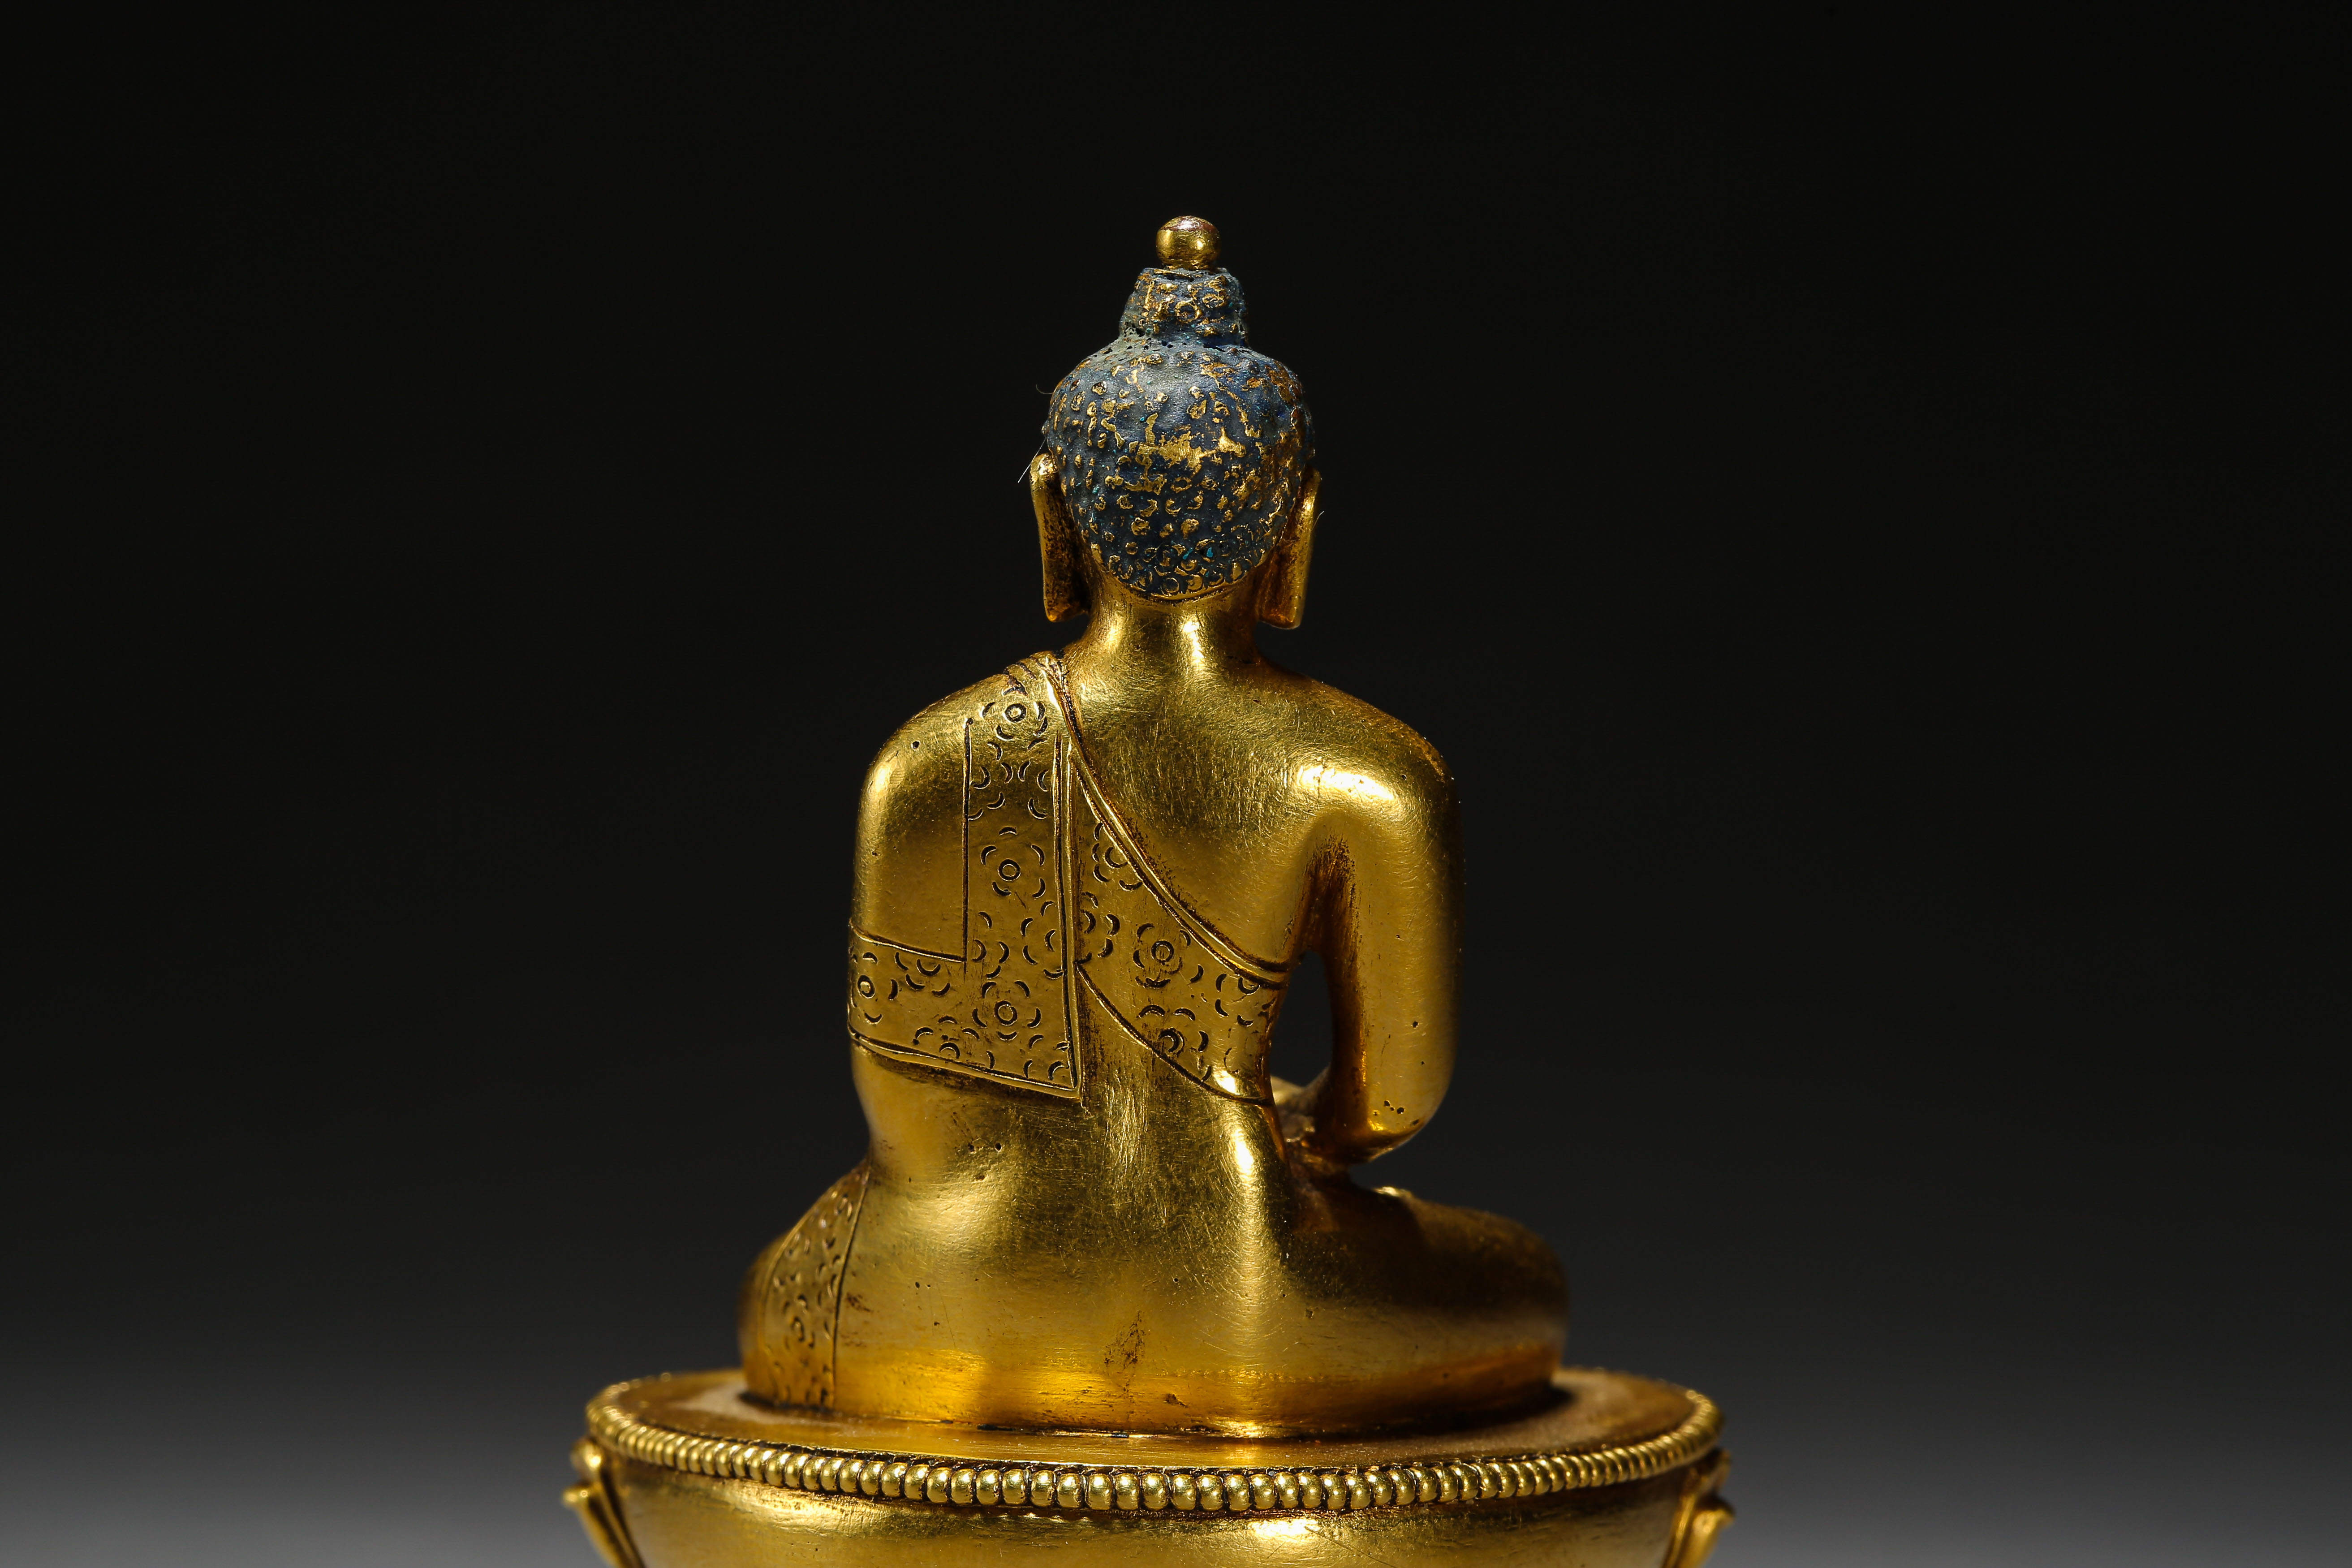 SEATED GILT BRONZE BUDDHA, QING DYNASTY, CHINA - Image 7 of 11